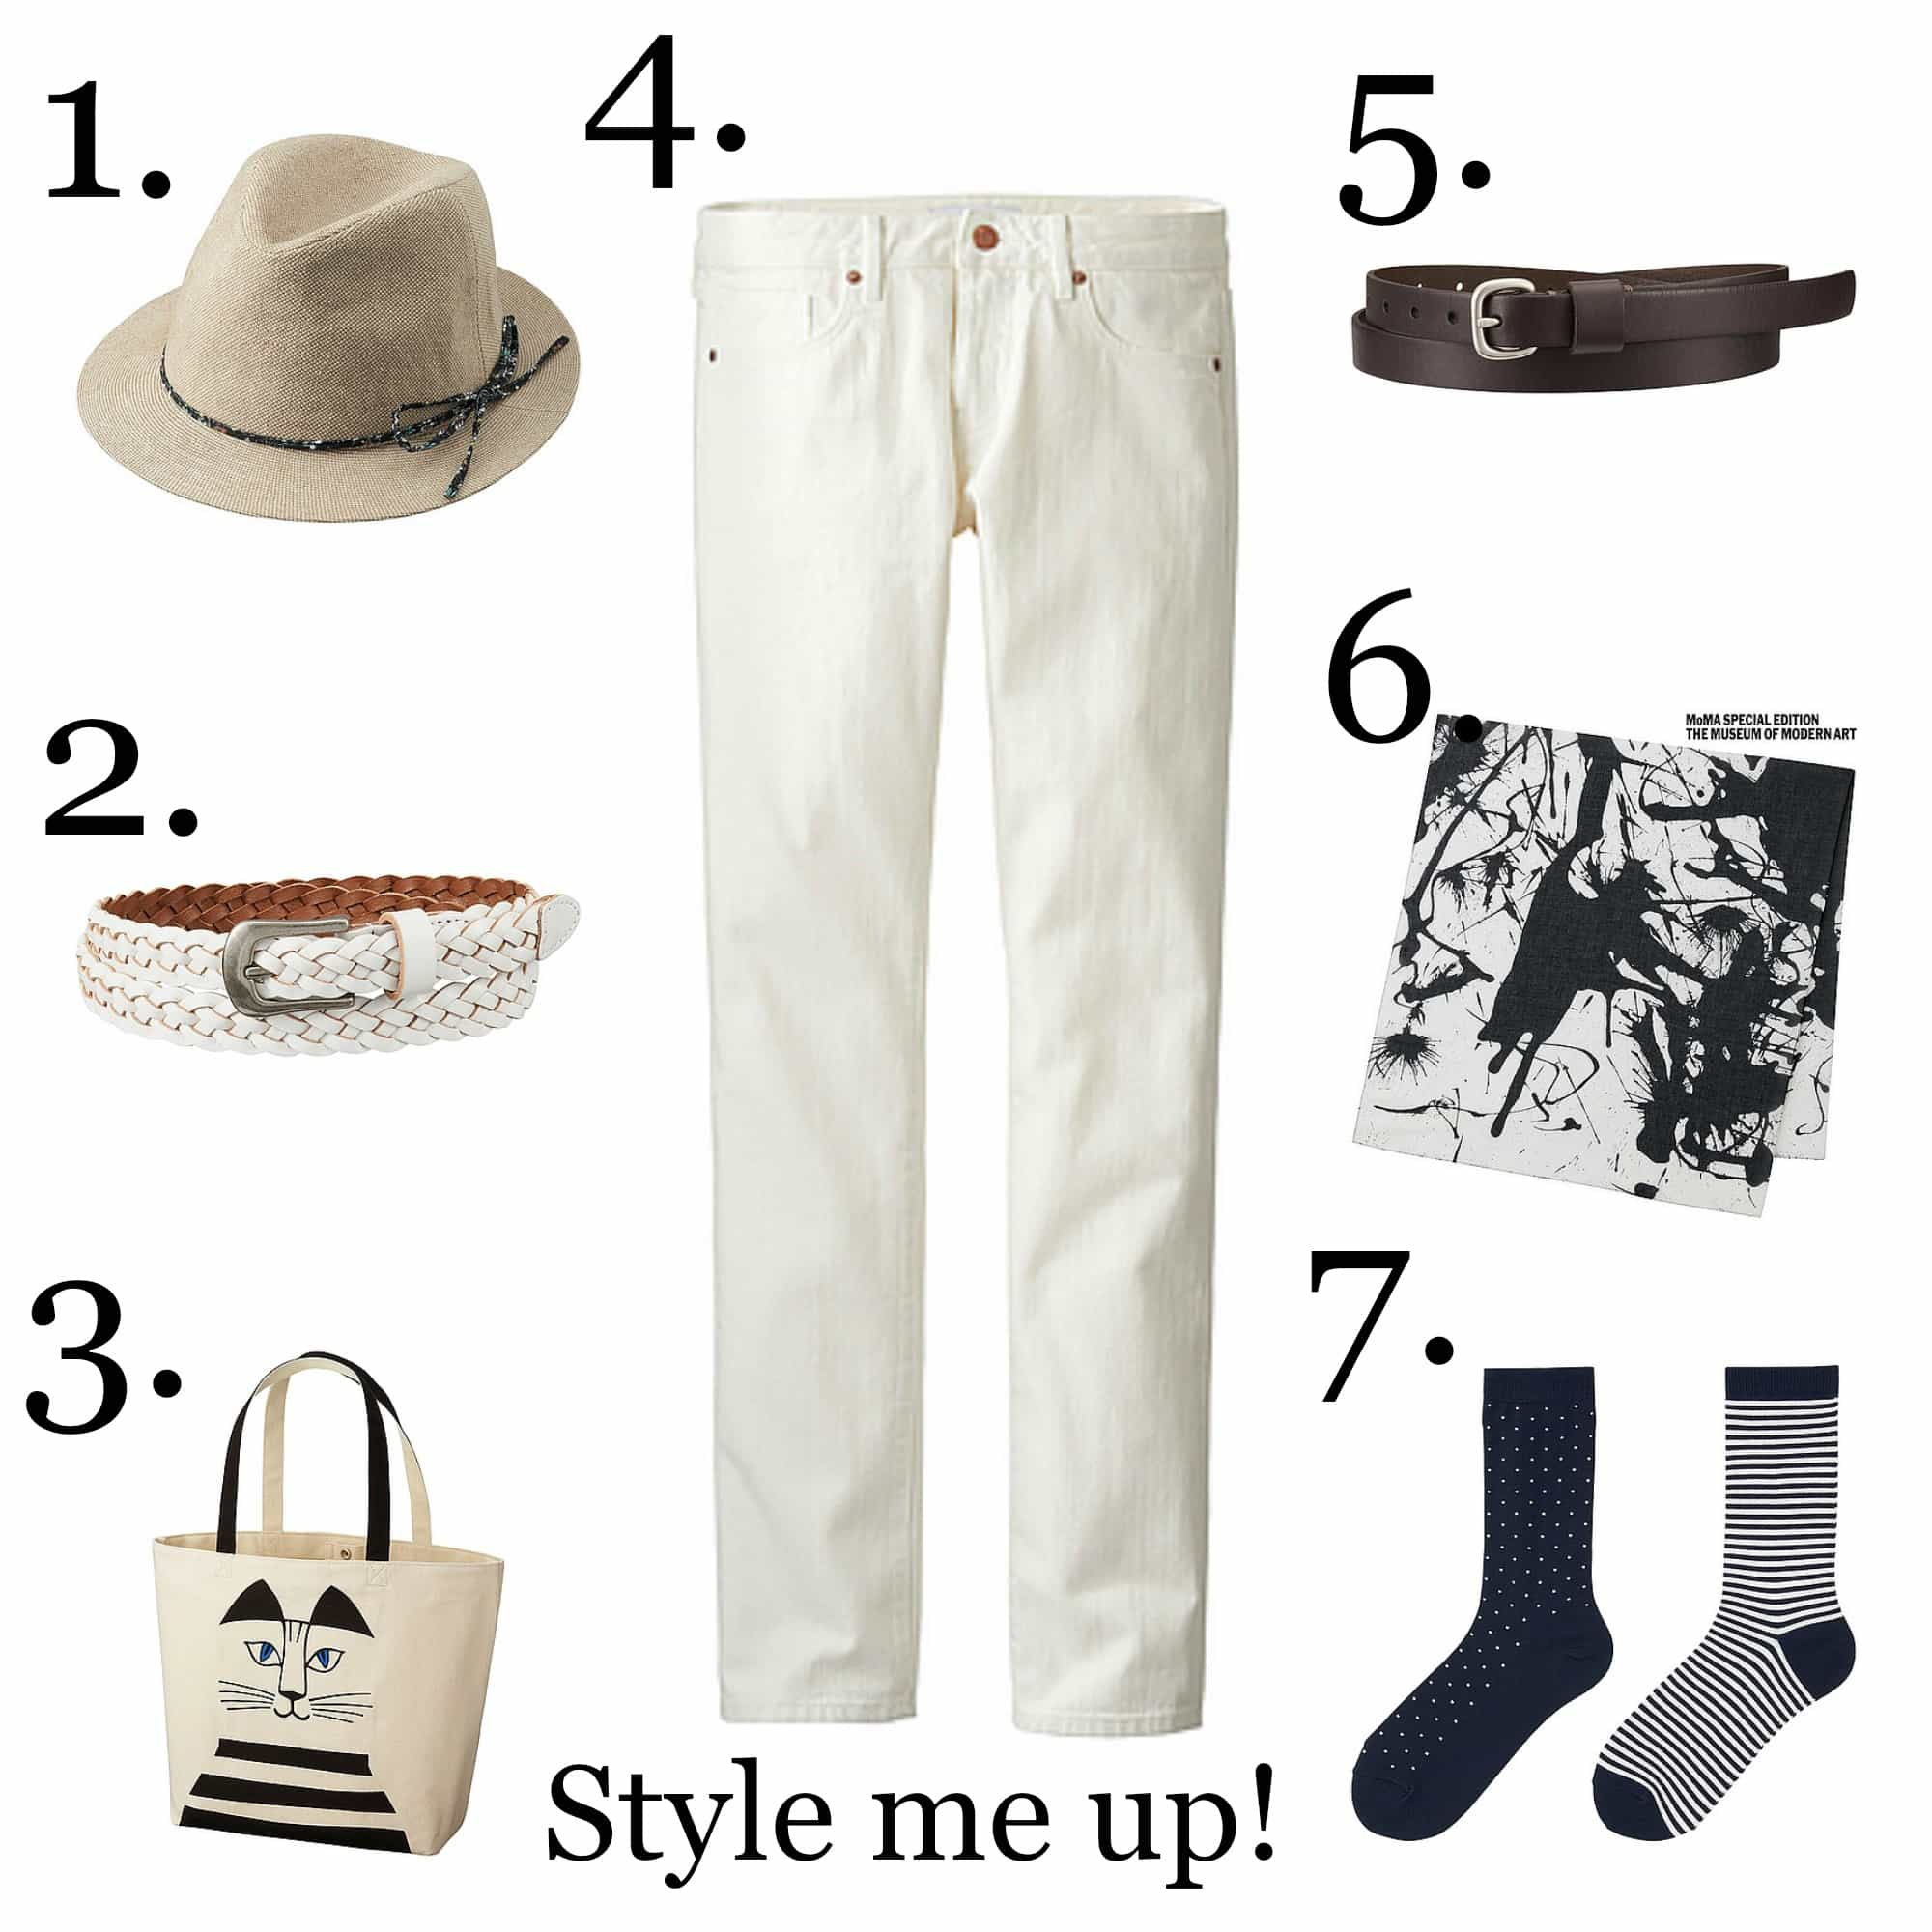 Cheat Sheet On How To Update Your Spring Wardrobe With